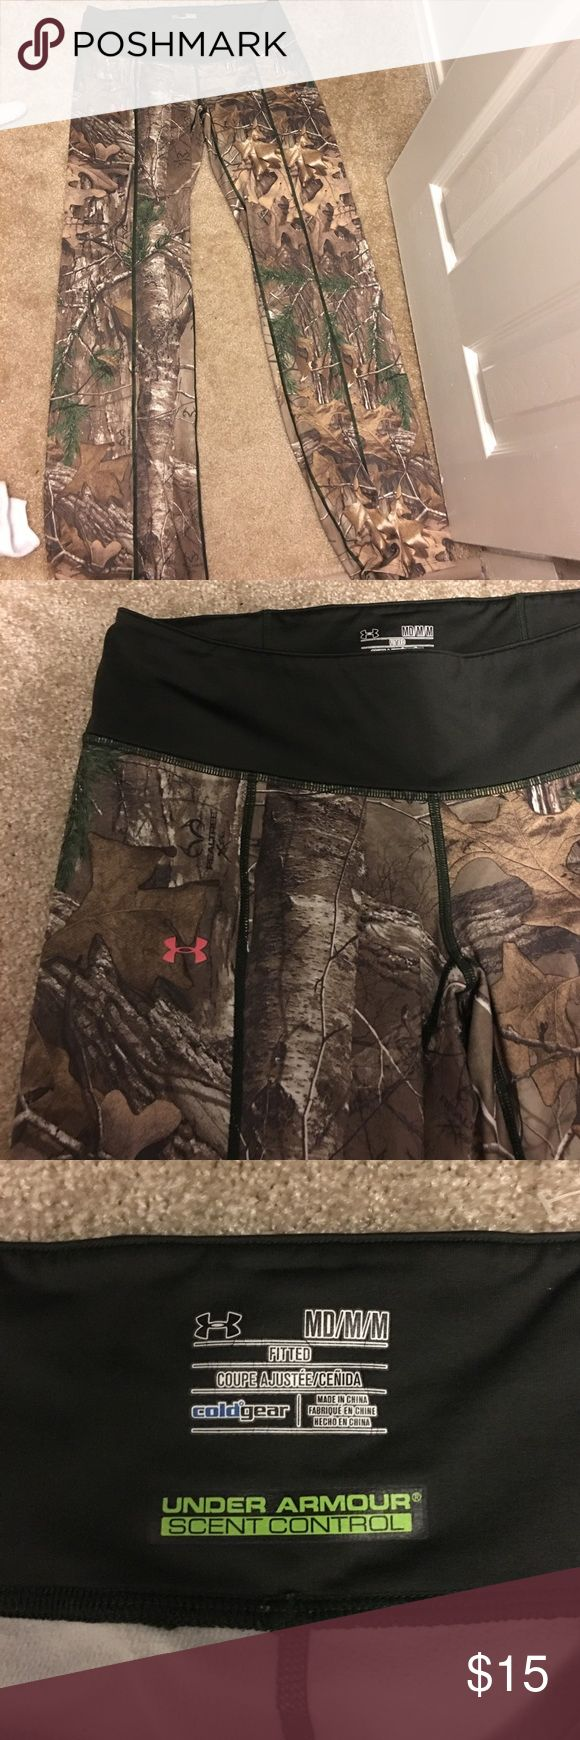 "Realtree Camo Yoga Pants UNDER ARMOUR Yoga pant type camo pants. Size Medium. Under Armor brand. Worn a few times but in great condition. From the ""cold gear"" line. Under Armour Pants Leggings"